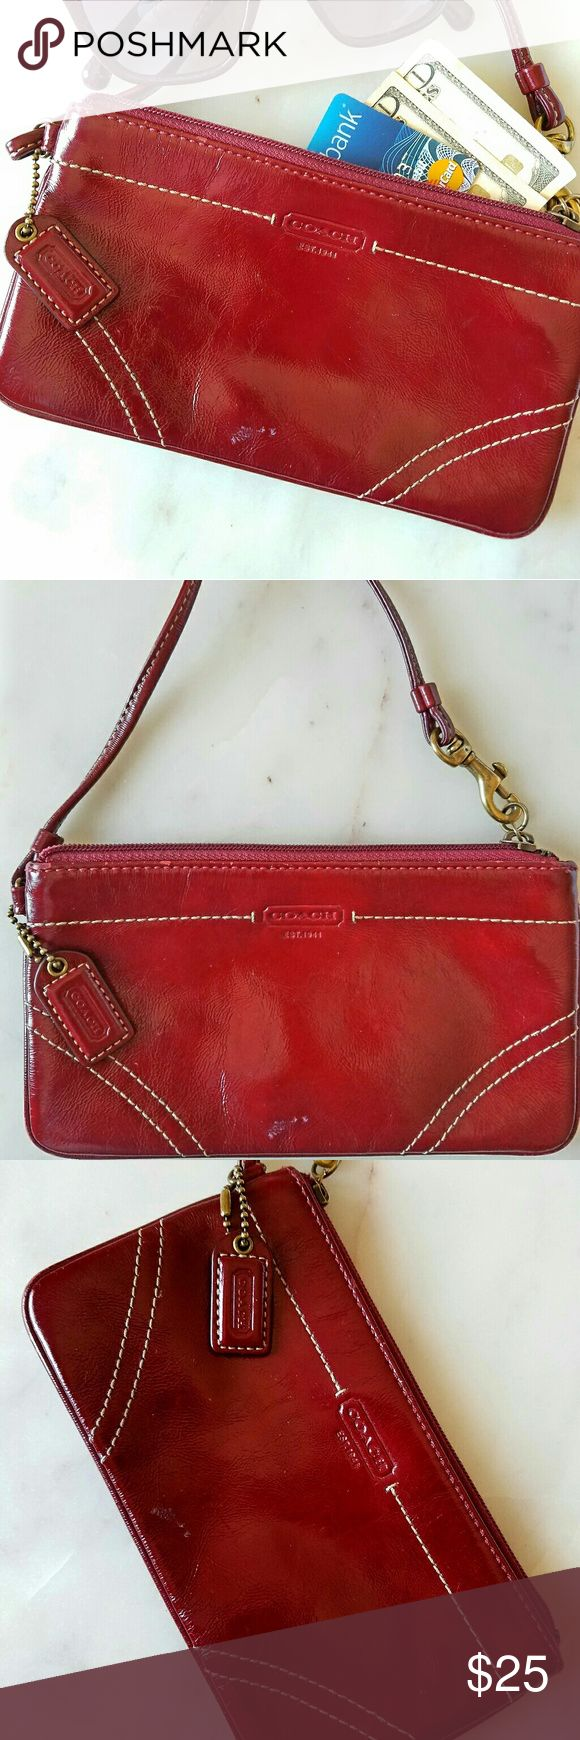 Gorgeous! Authentic COACH clutch original! 🍀Good lucky red clutch🍀Good condition🌟🌟🌟🌟🌟 Coach Bags Mini Bags